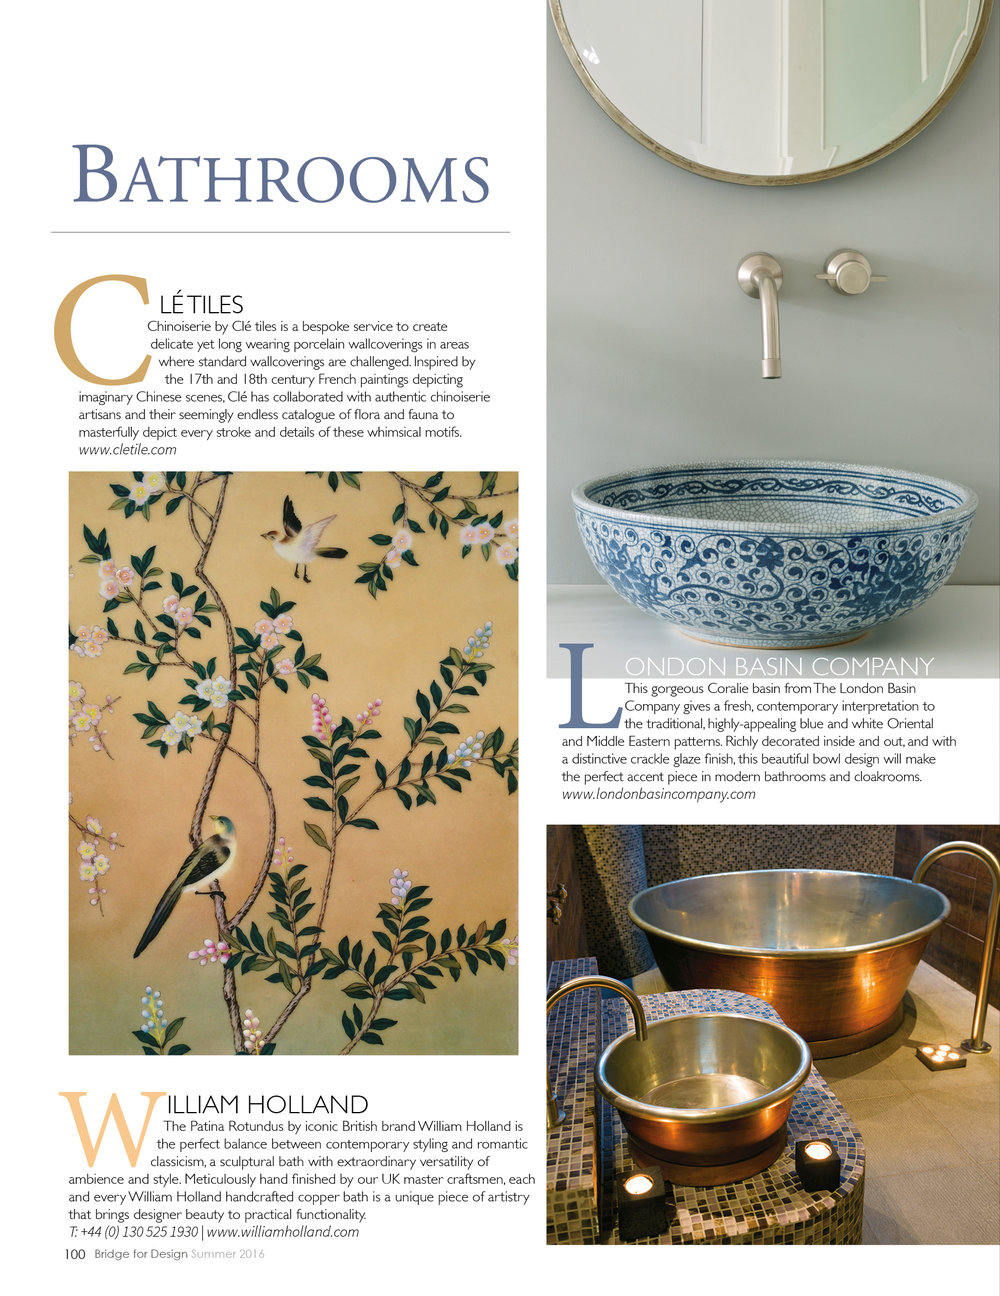 Kitchen & Bathrooms News June LBC.jpg